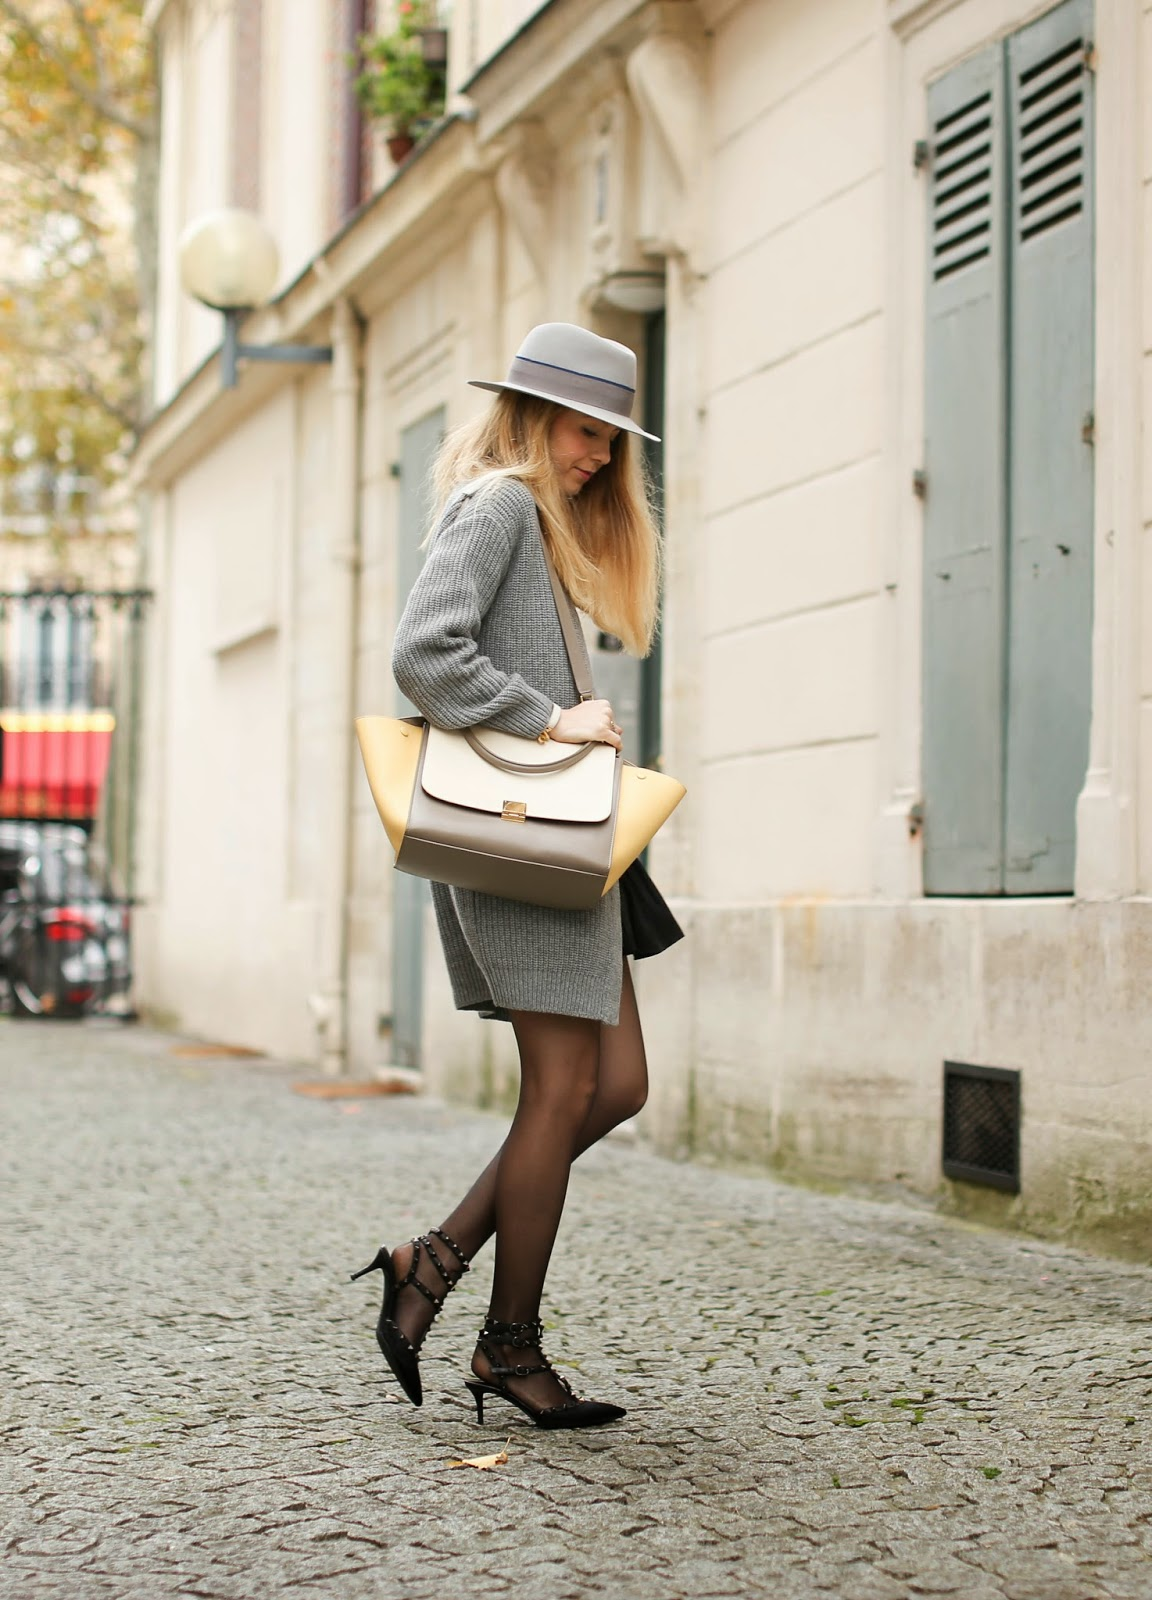 Caroline Louis in her trimmed rabbit felt fedora from Maison Michel